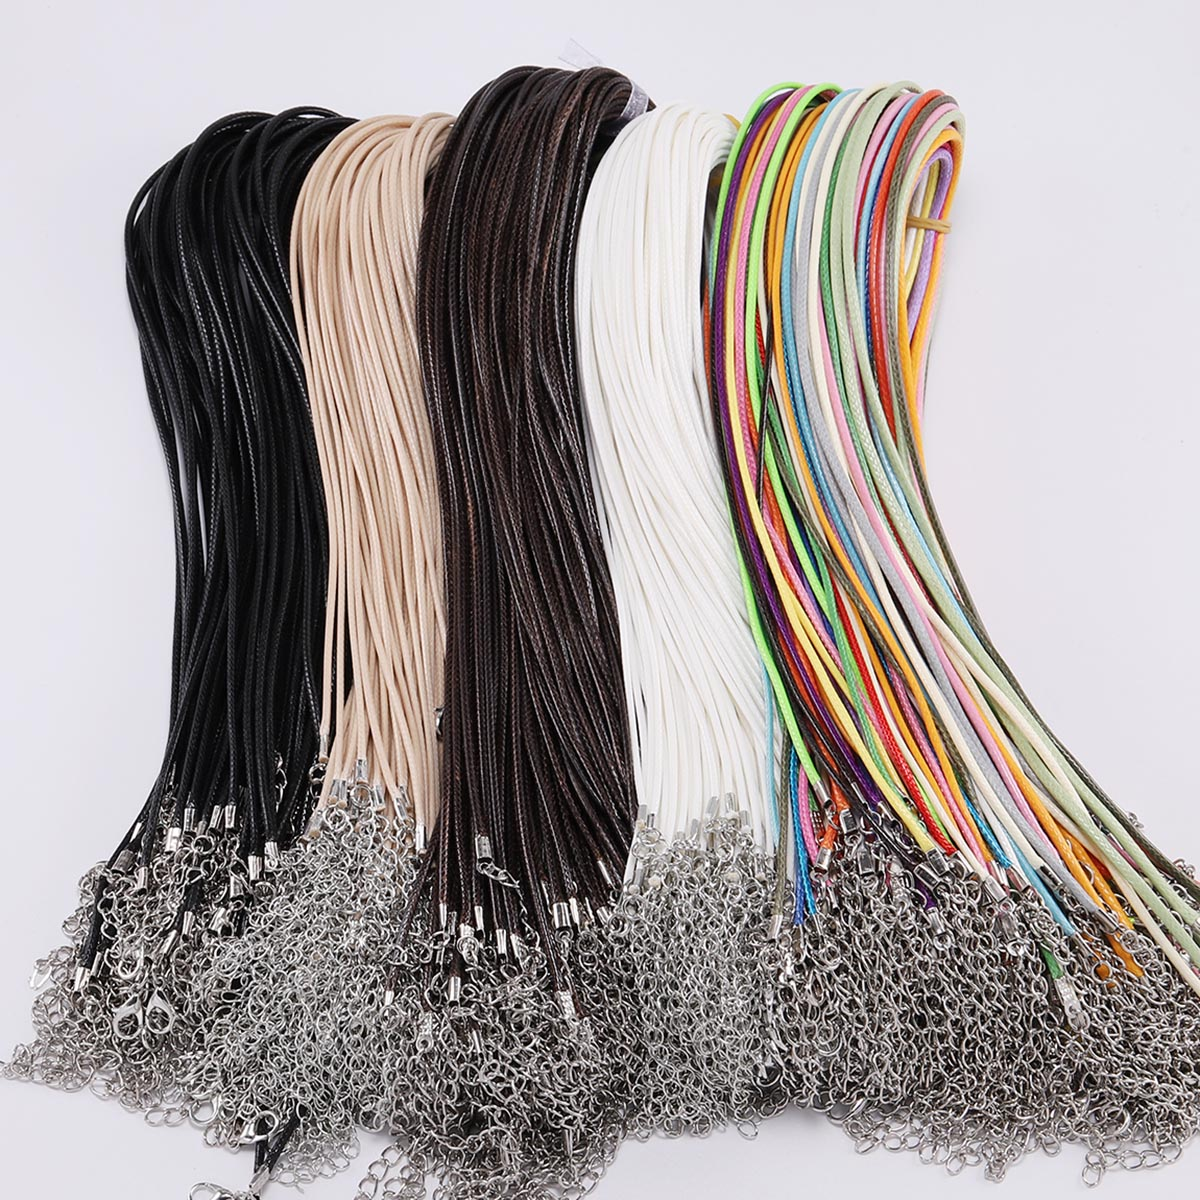 10 Pcs/lot Dia 1.5/2mm Real Leather Cord Necklace With Clasp Adjustable Braided Rope For Jewelry Making DIY Necklace Bracelet